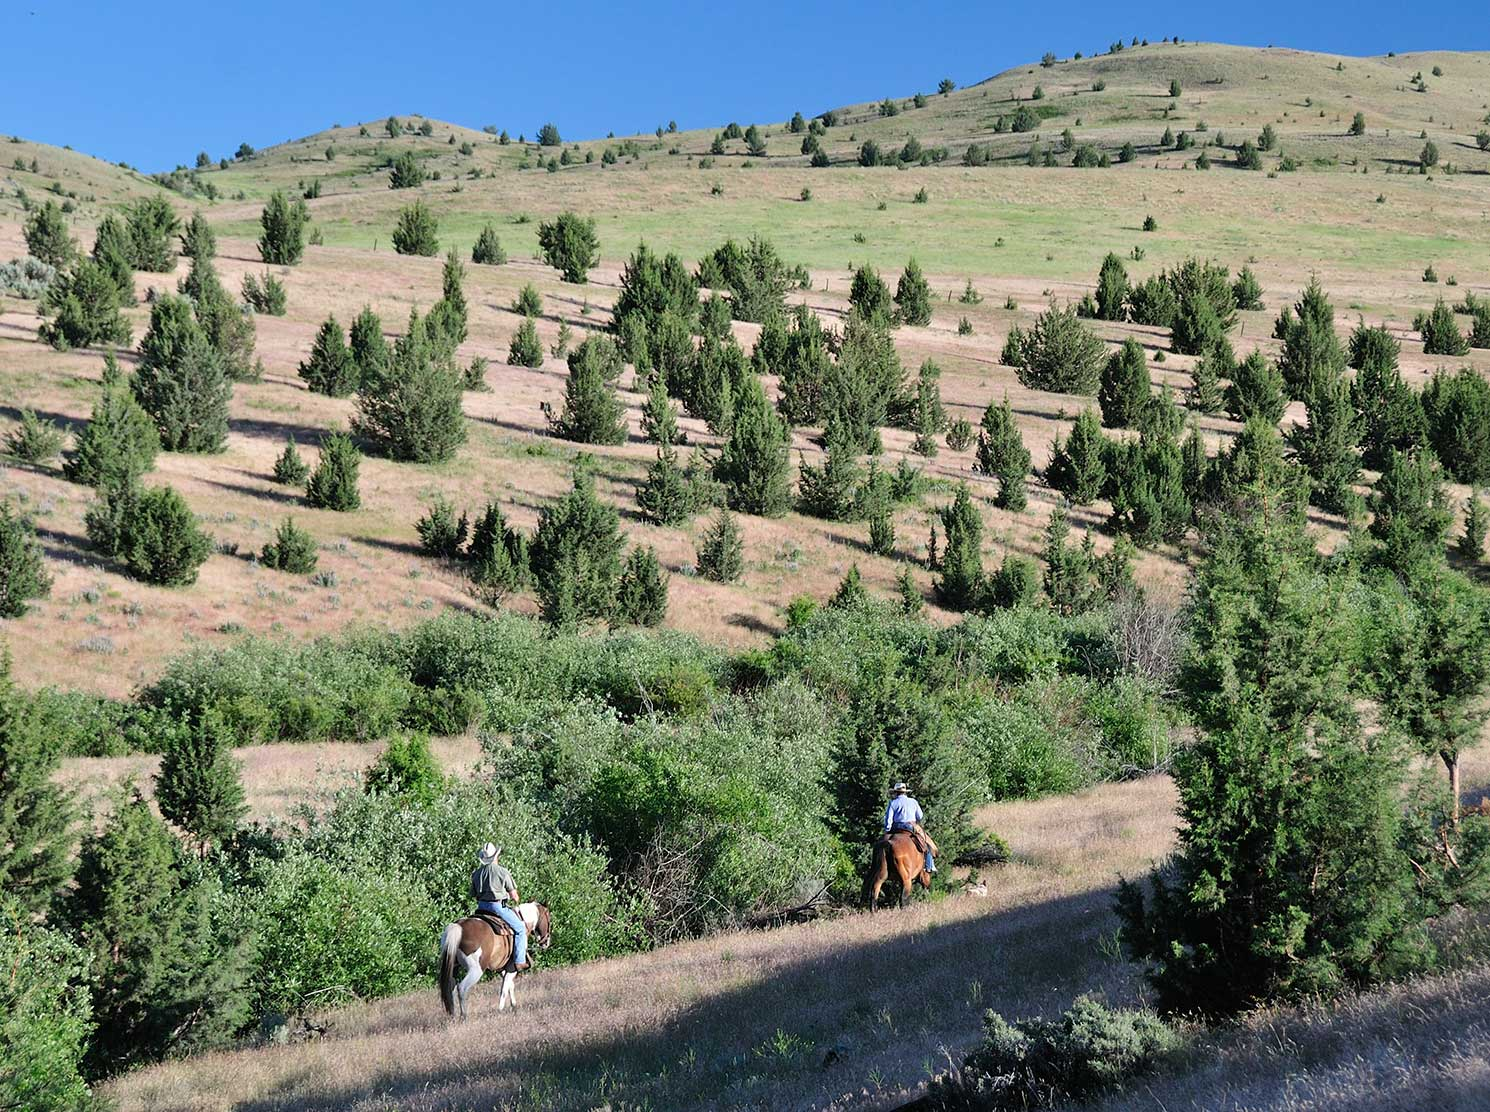 Two people riding horseback through brush dotted hills